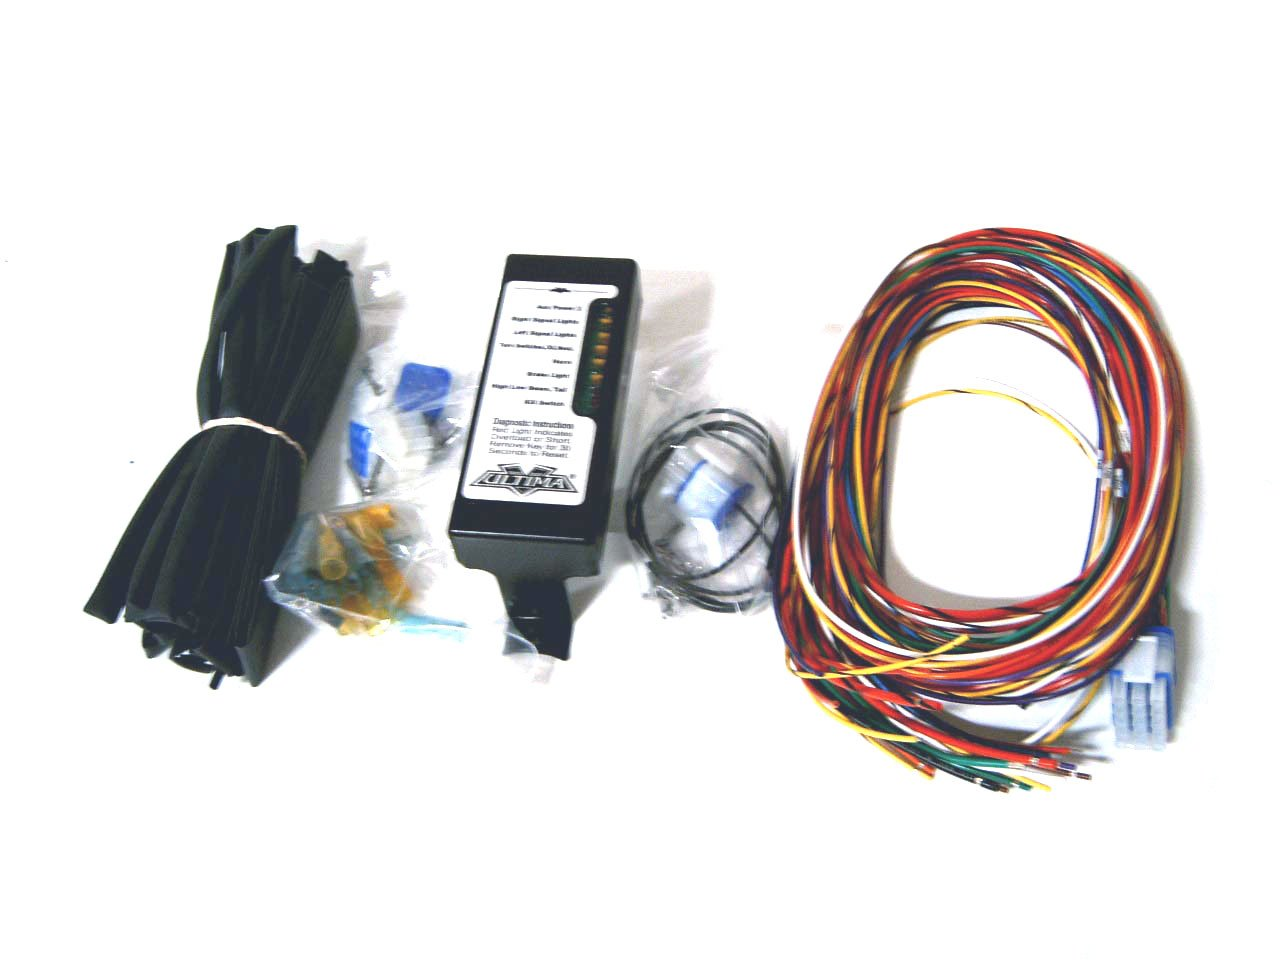 61DV2Bq5%2BHL._SL1280_ amazon com ultima complete wiring harness kit for harley davidson harley davidson trailer wiring harness at alyssarenee.co